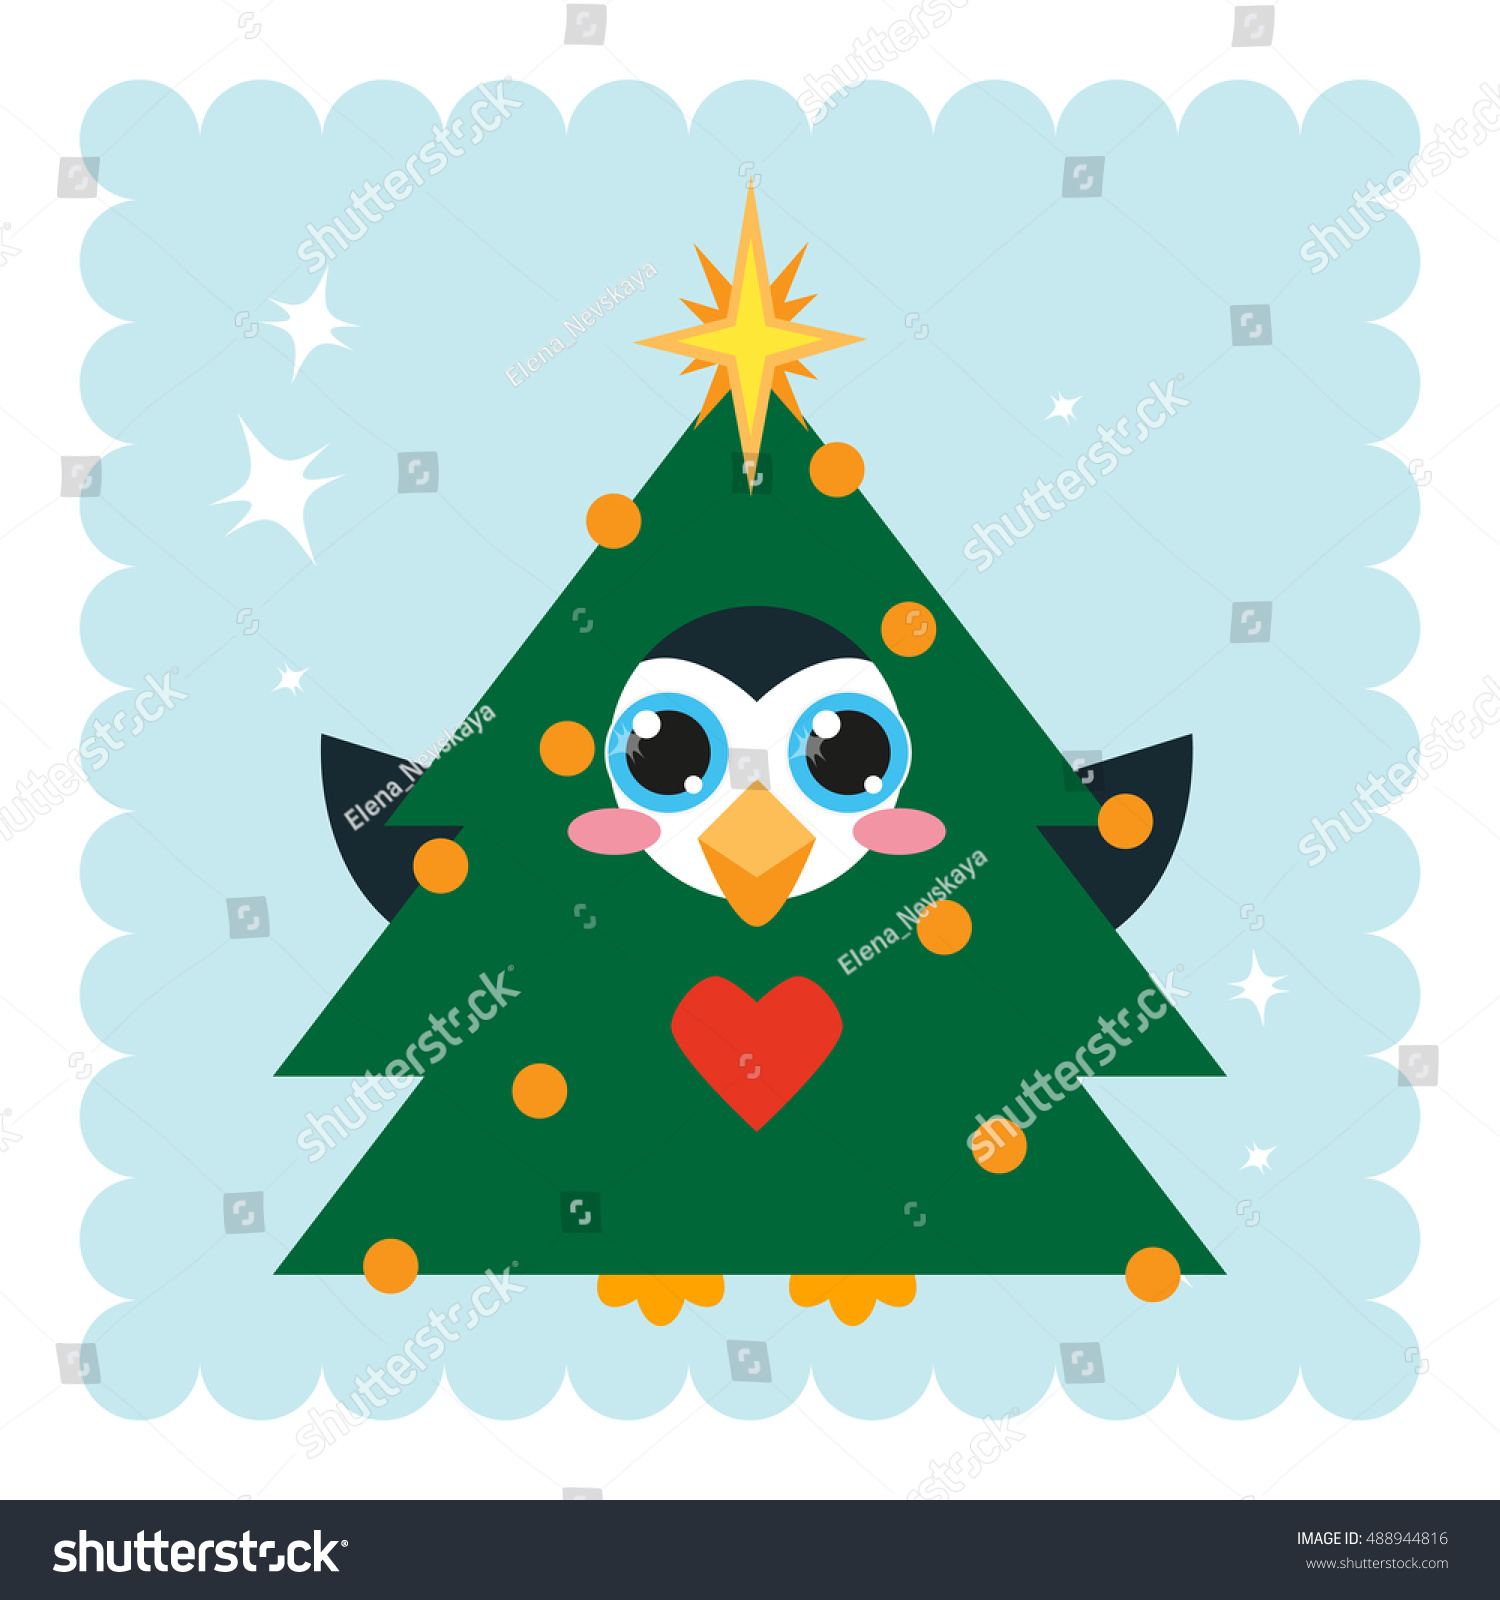 Kawaii Anime Penguin Big Sparkle Eyes Stock Vector Royalty Free 488944816 Christmas is a very special time of the year where every kid eagerly look forward to have some fun. https www shutterstock com image vector kawaii anime penguin big sparkle eyes 488944816